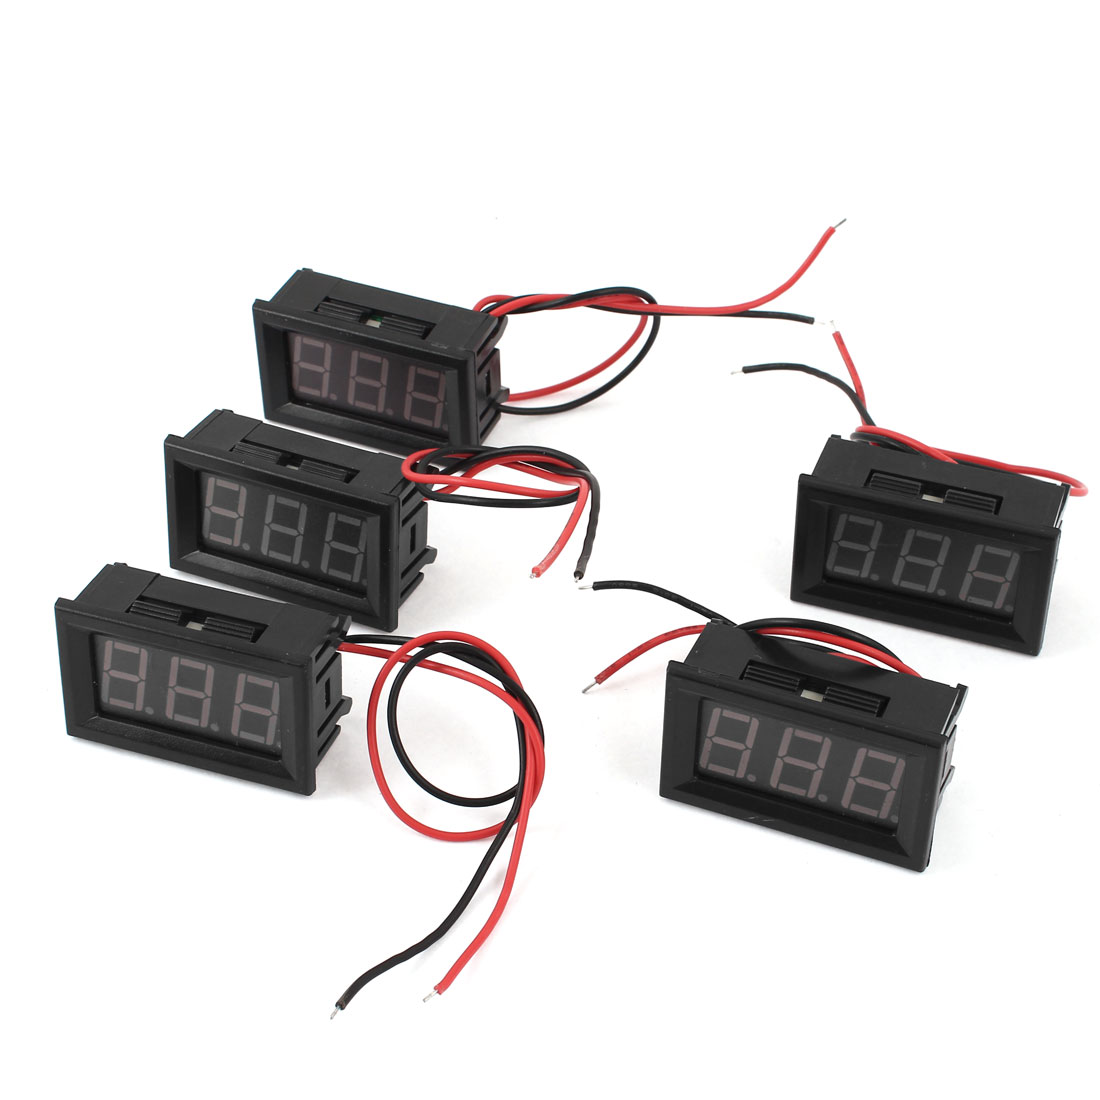 5pcs DC 6-12V Measuring Range 2 Wire Connect Red LED Digit Voltmeter